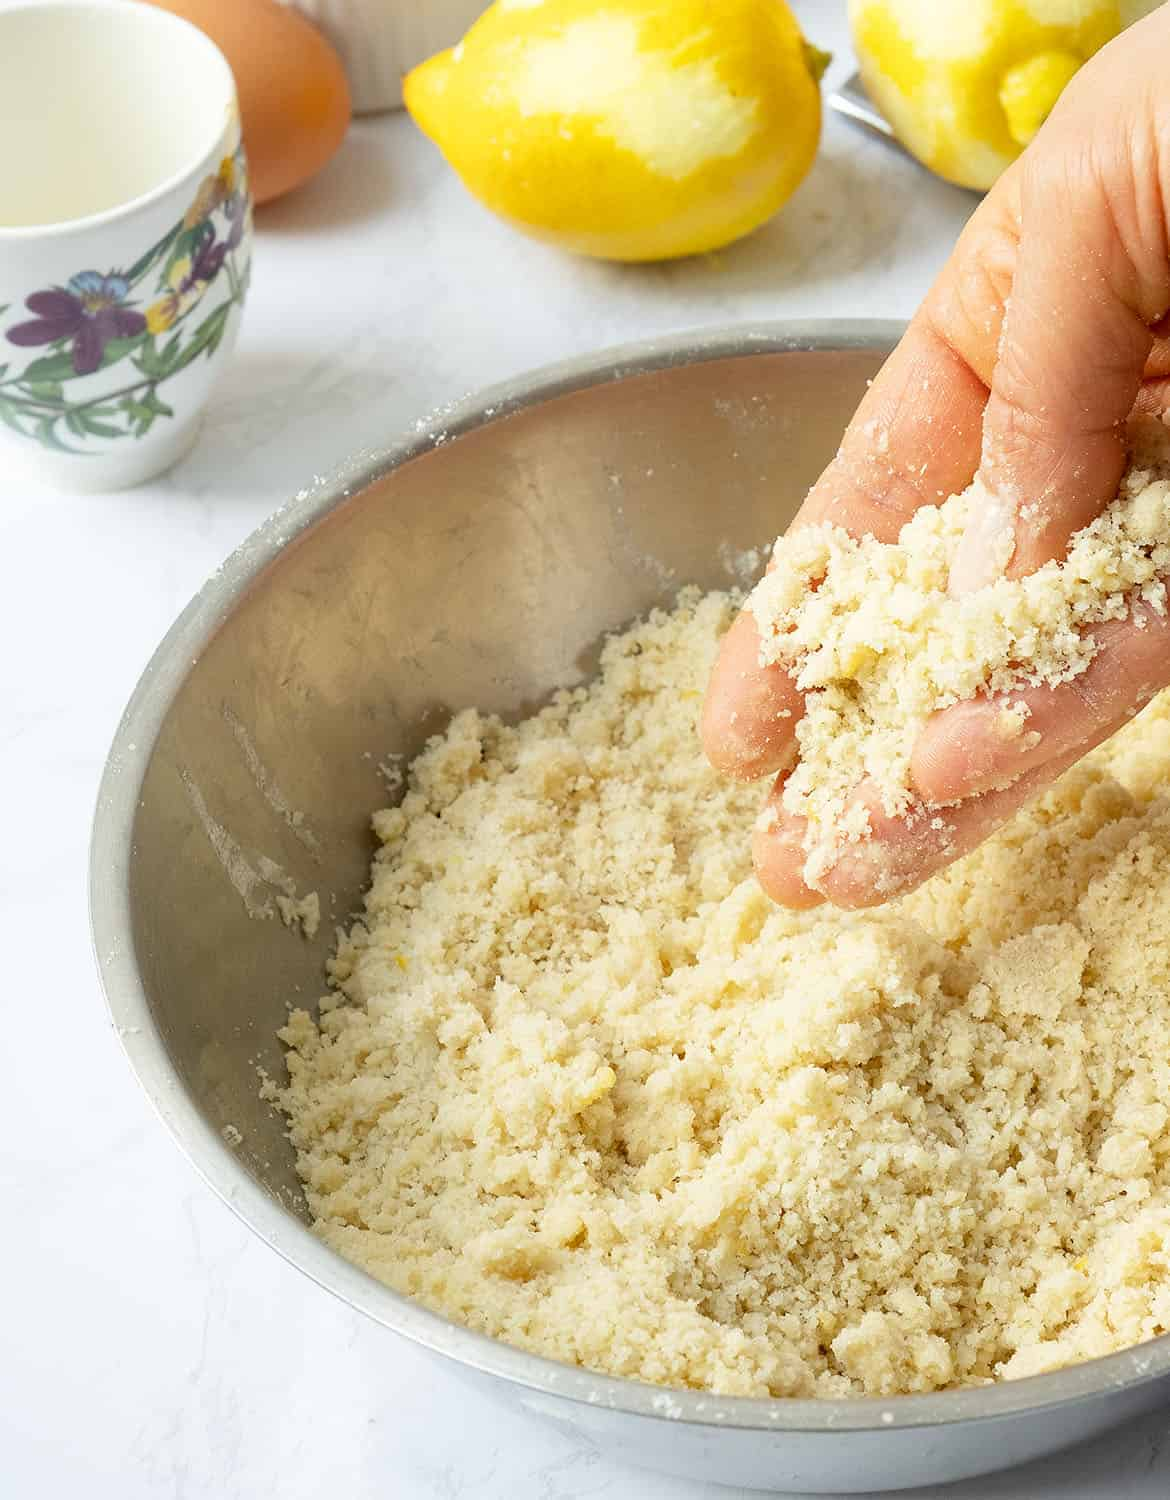 How to make the ricotta cake crumbles: rub flour, egg, sugar, oil and lemon zest.